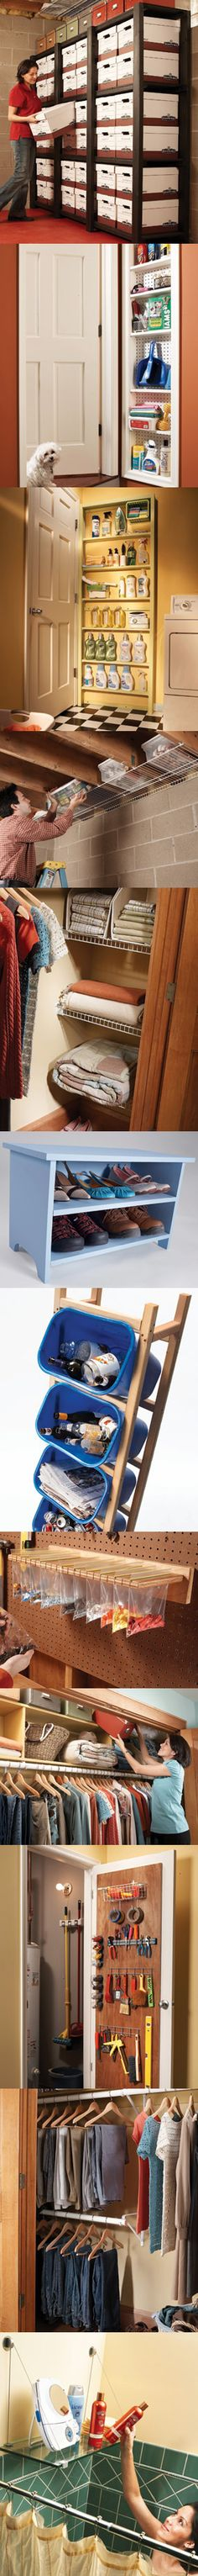 Need more room for your stuff? Learn 12 new solutions for storage space problems—everything from hidden shelves to shoe racks to recycling towers and more. Get inspiration at www.familyhandyma...